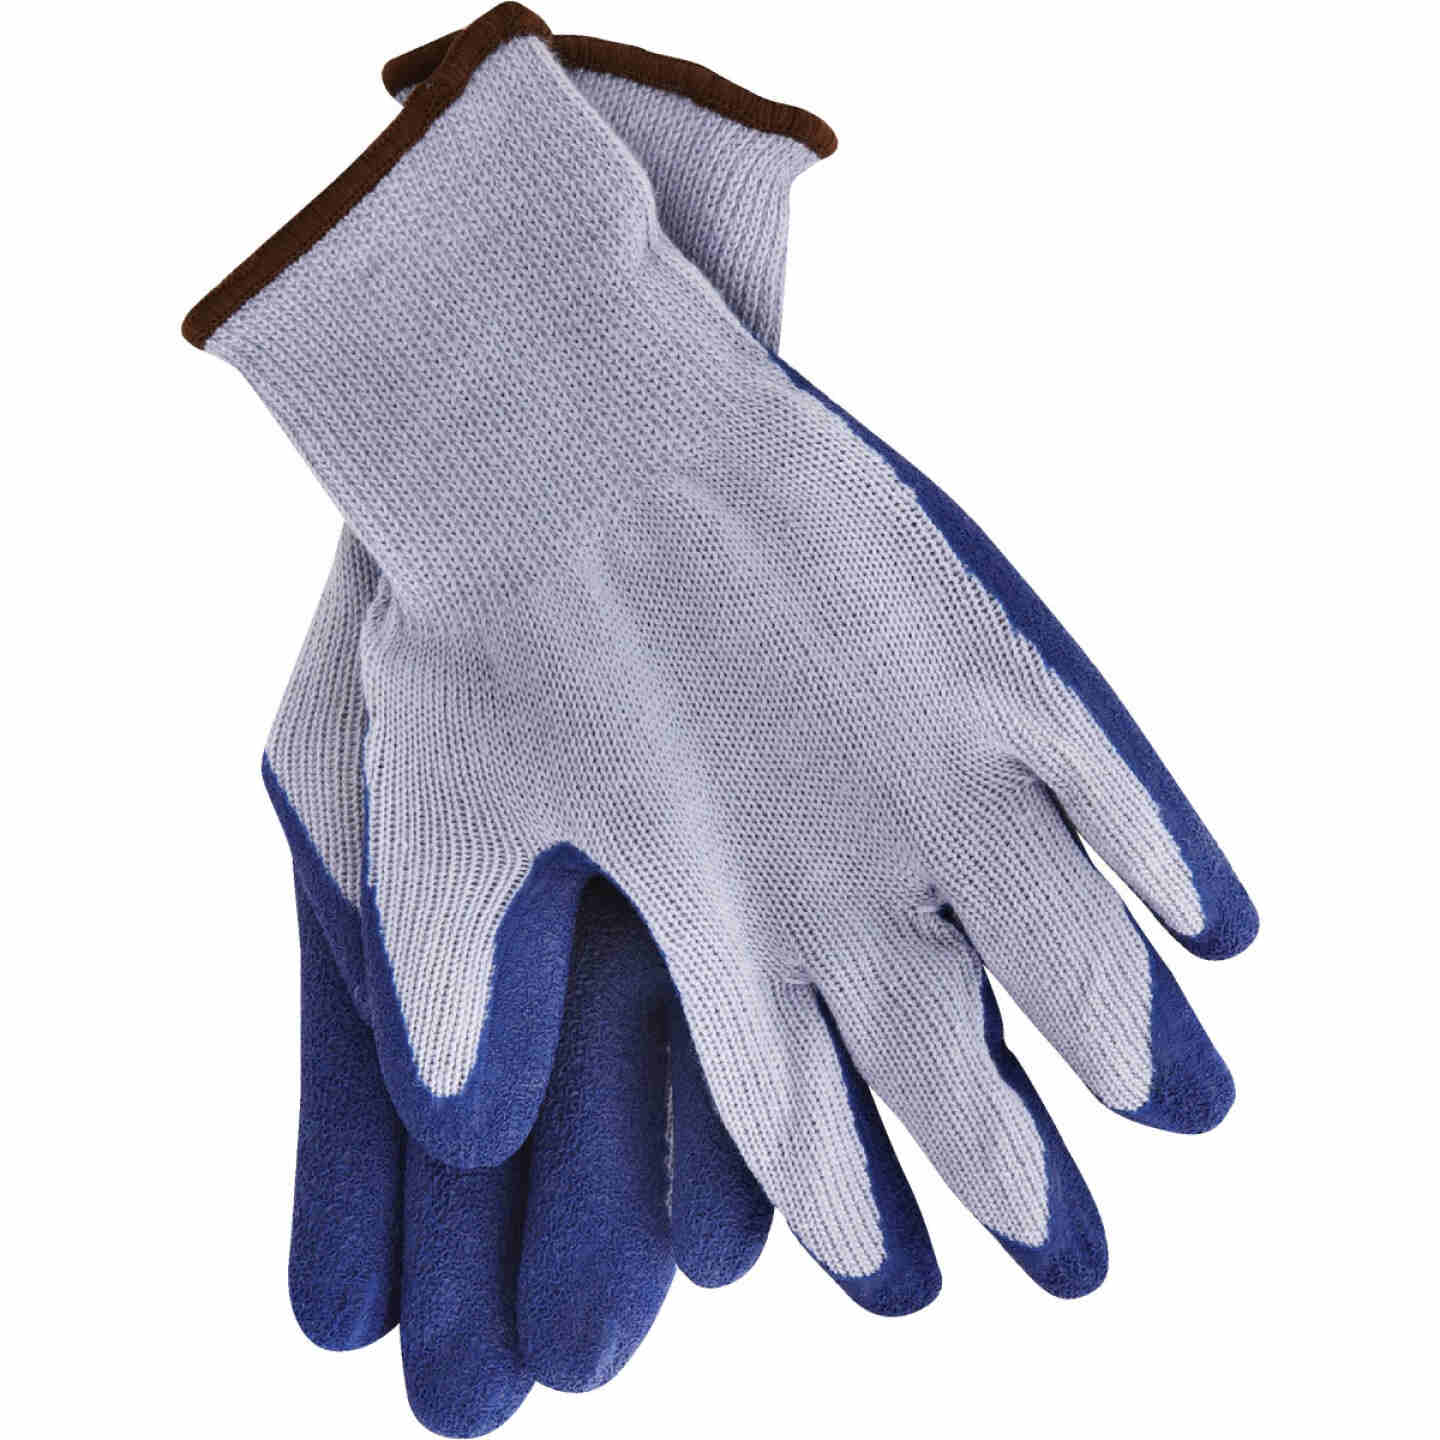 Do it Men's Large Grip Latex Coated Glove, Blue Image 4